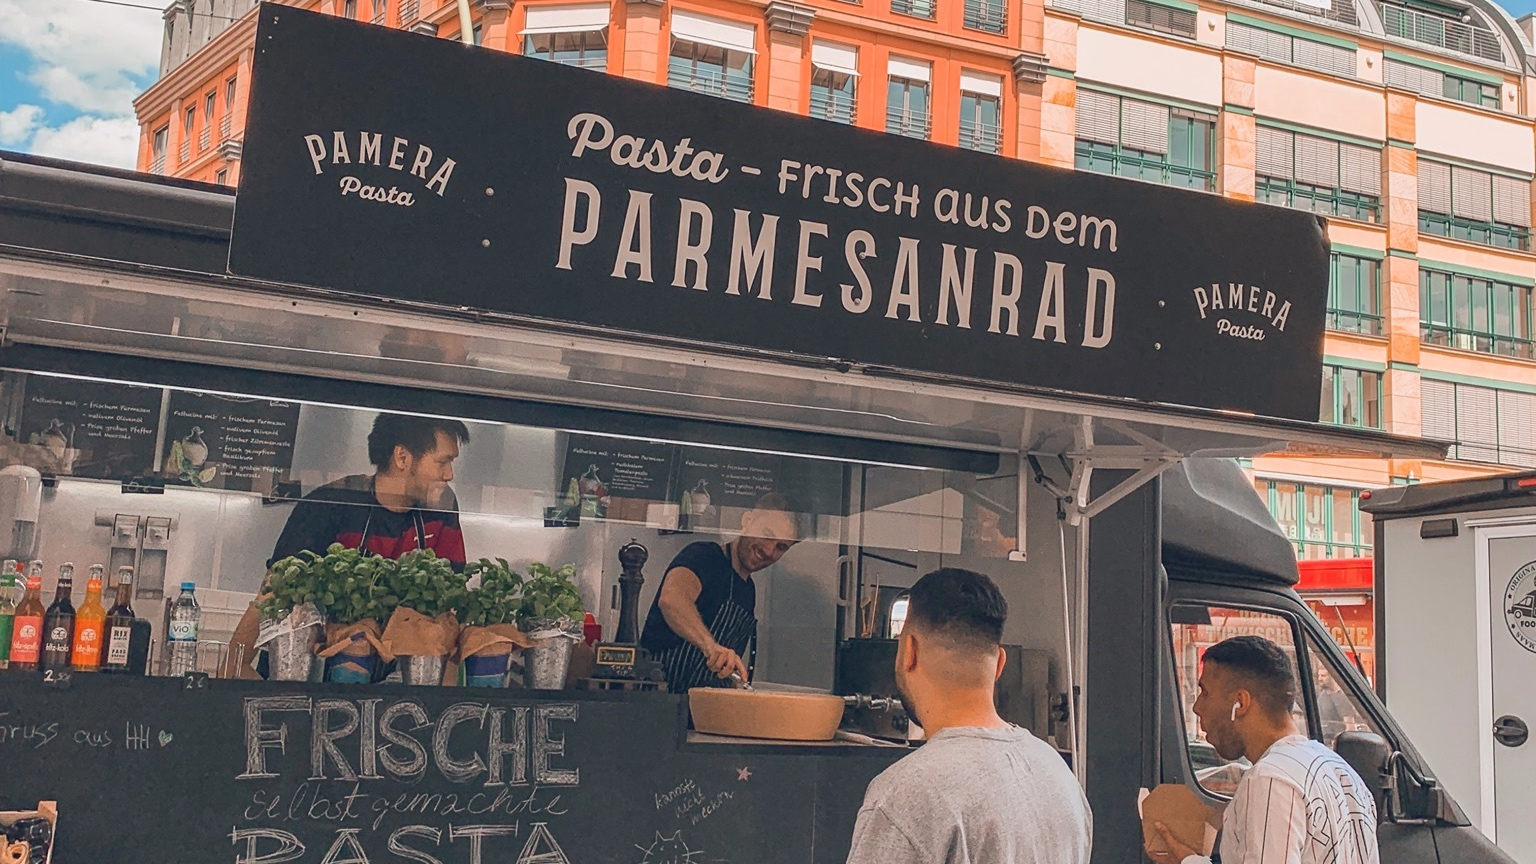 Foodtasterberlin presents Berlin's must-eat food!  What's better than watching the sunset  with the best view over Berlin, eating super delicious pasta  served out of a cheese wheel, enjoying great music from a live DJ and drinking delicious drinks?   Pamera is serving delicious and handmade (!) Pasta with 4 fantastic combinations for a fair price.